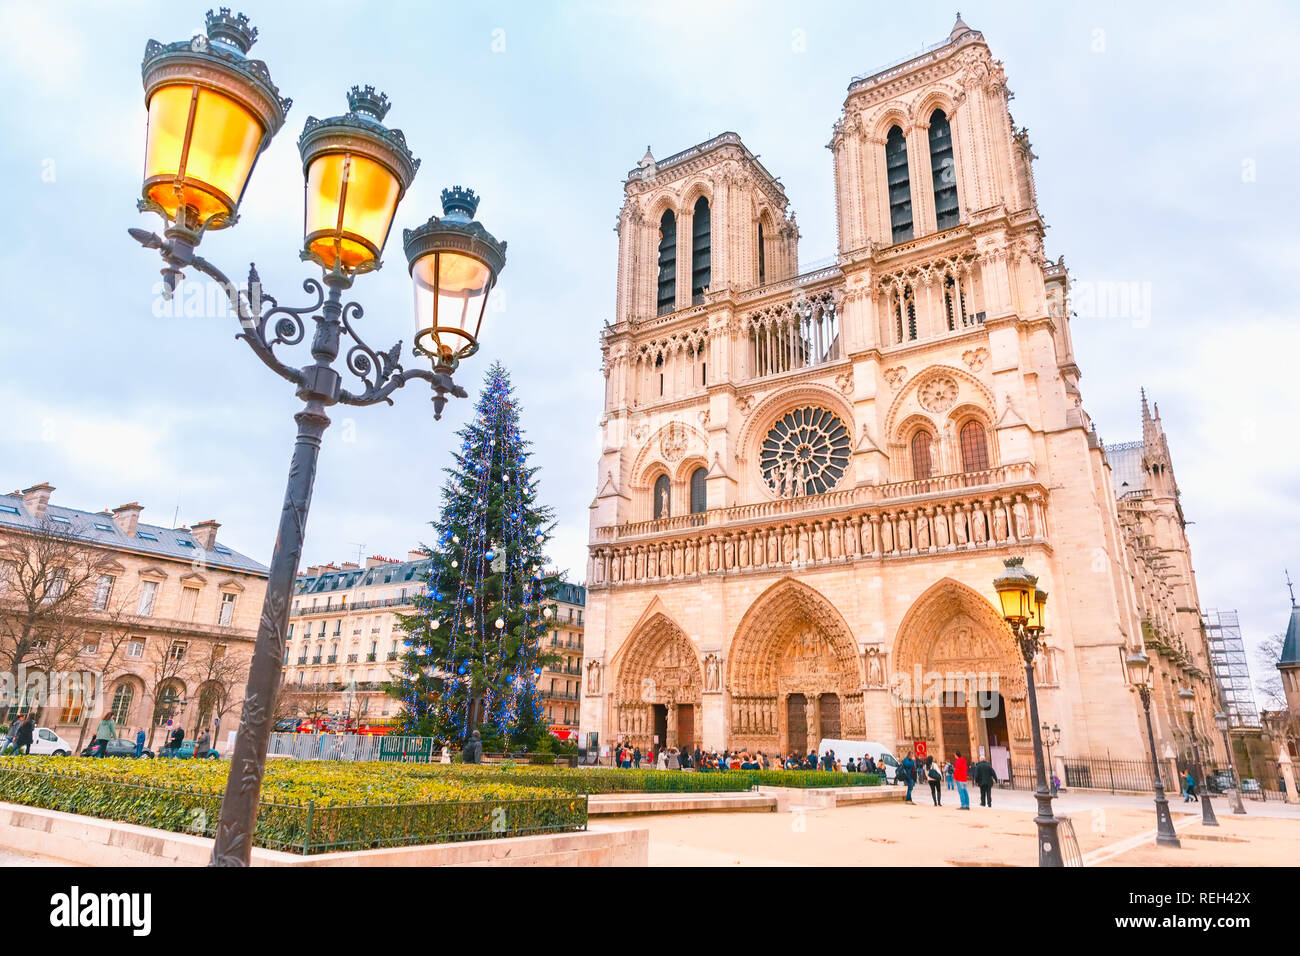 Cathedral of Notre Dame de Paris at Christmas - Stock Image